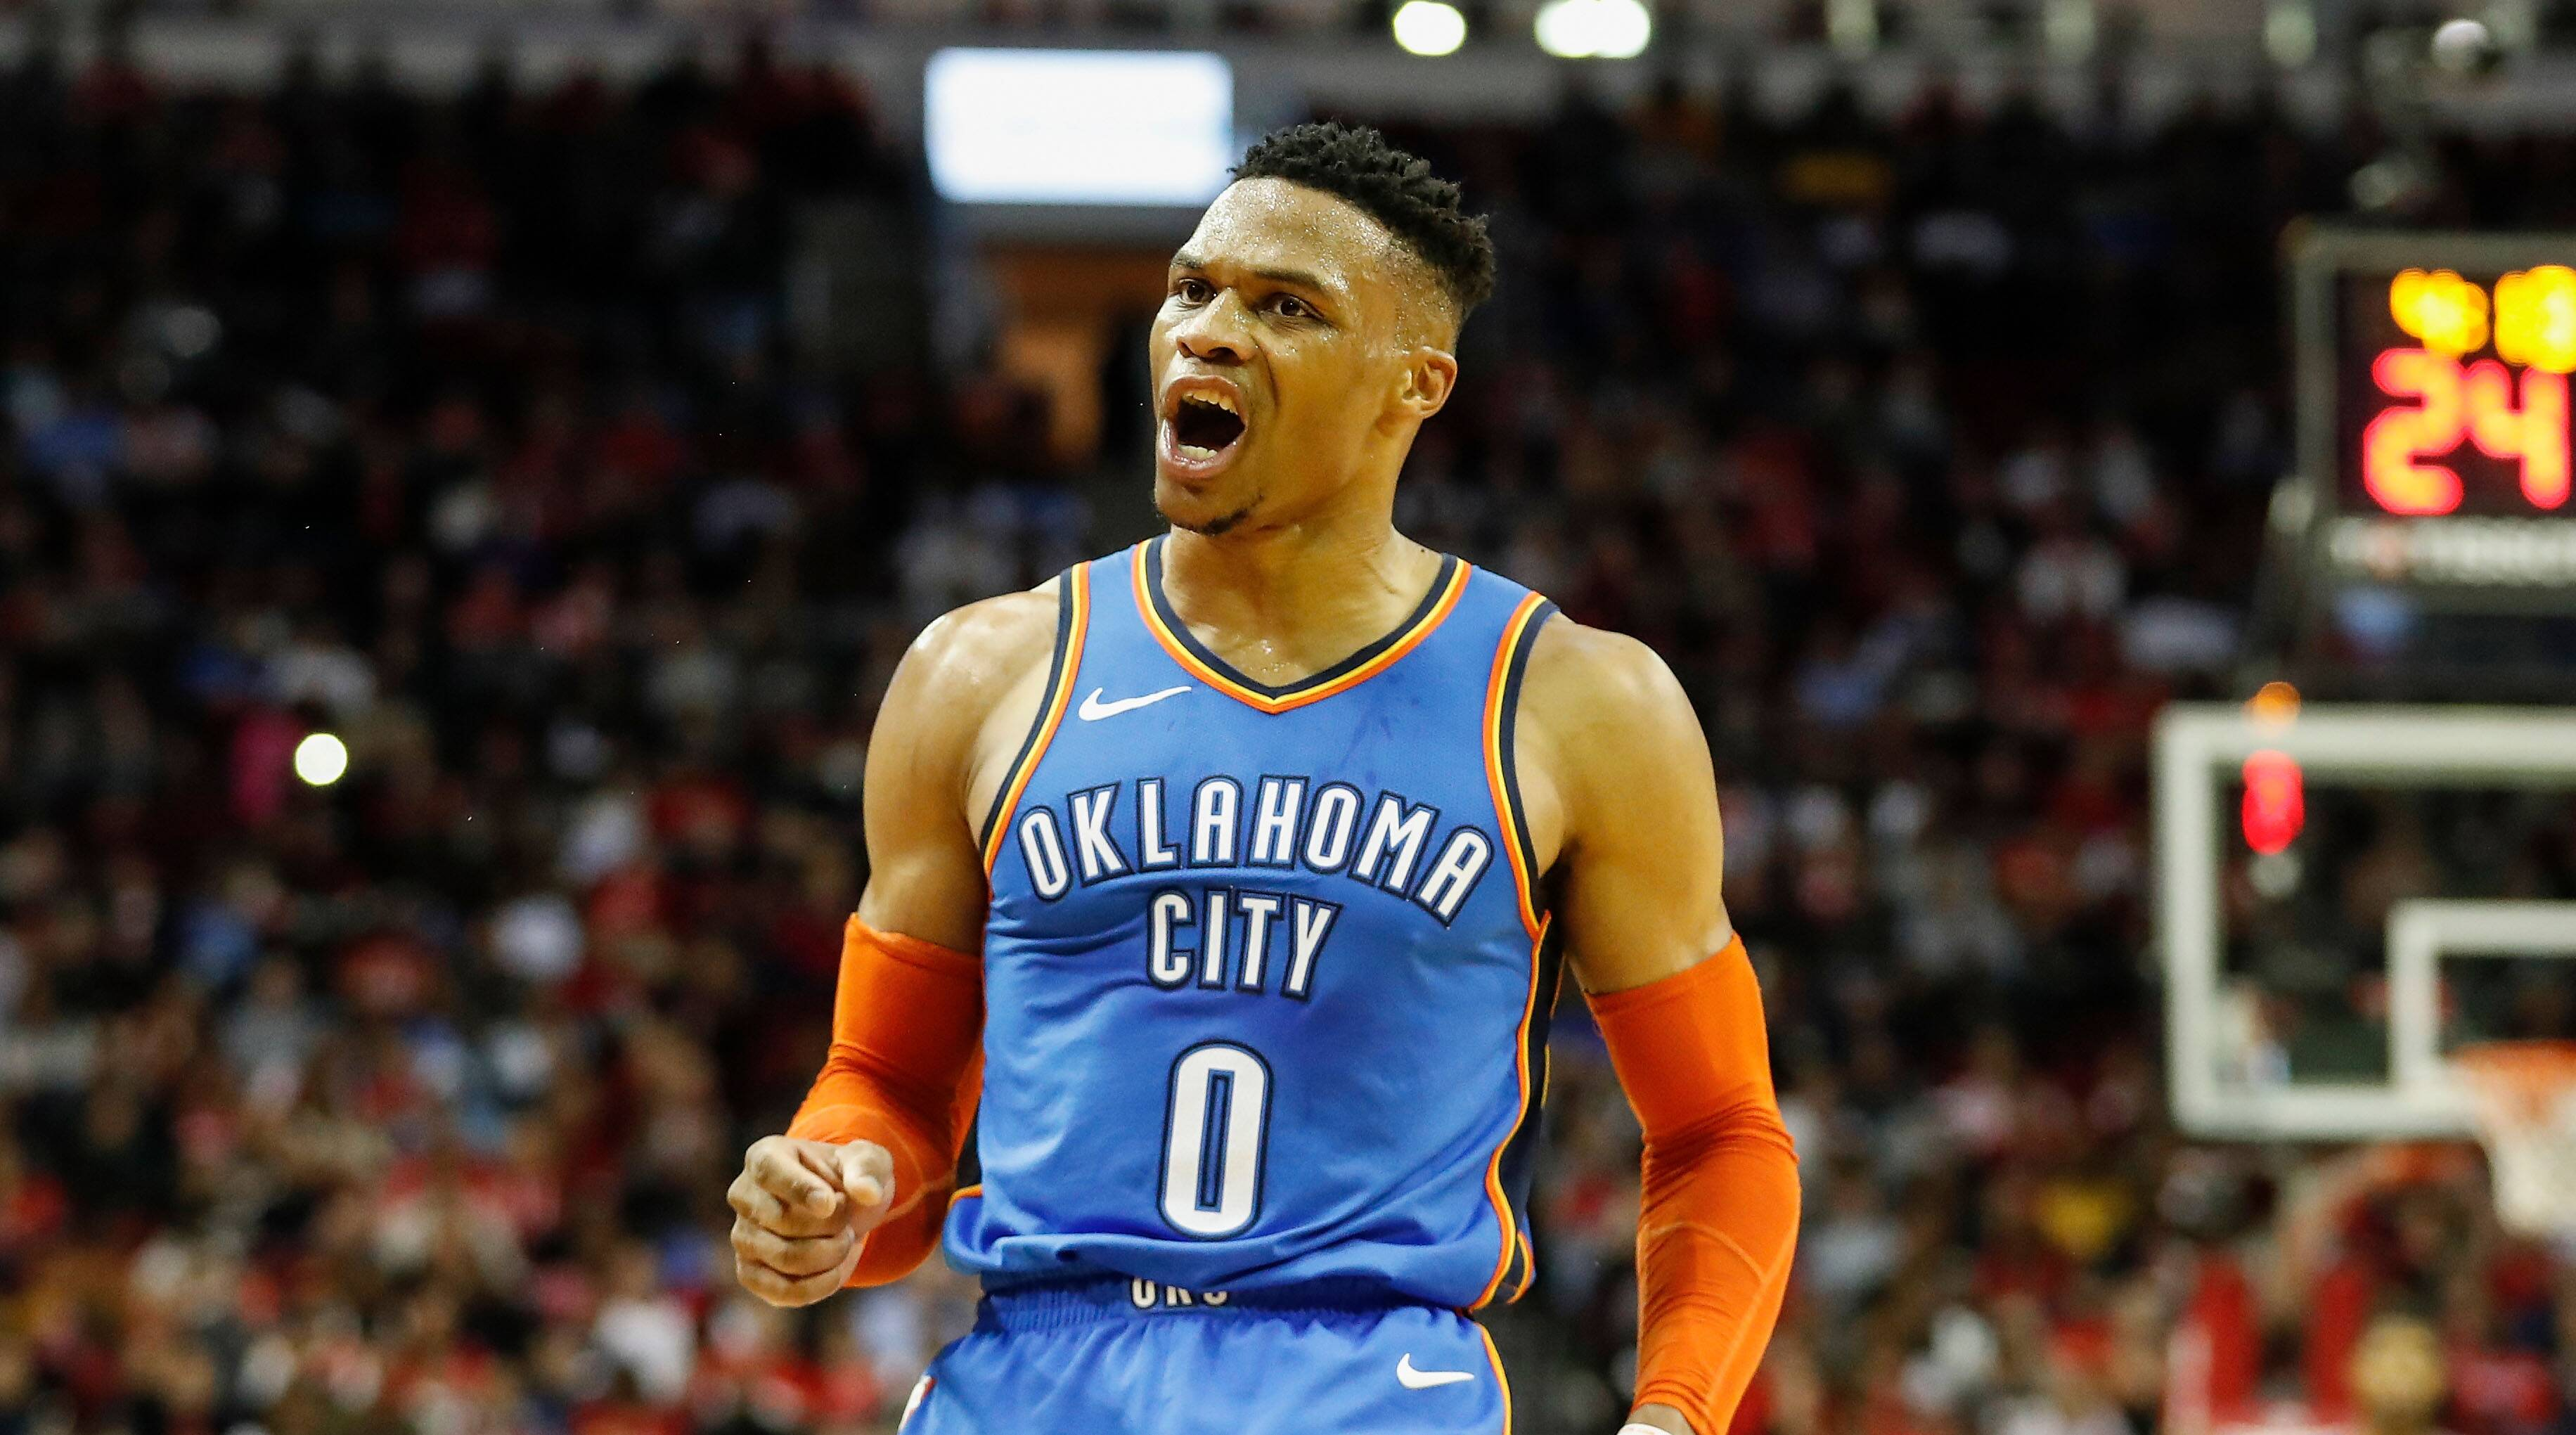 「russell westbrook rockets」の画像検索結果